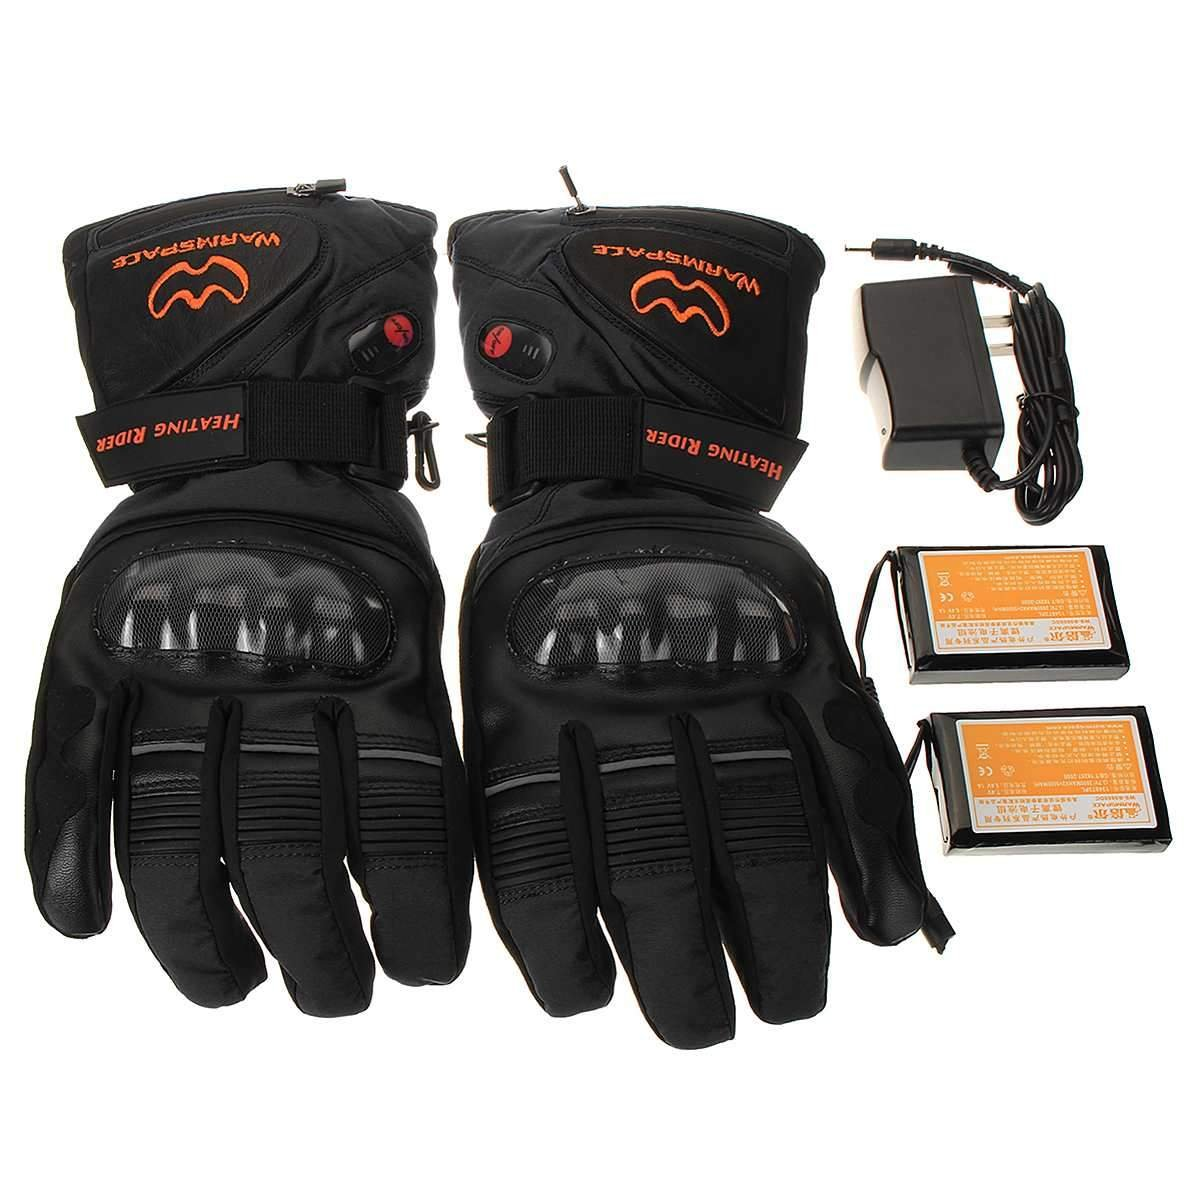 5600mAh Rechargeable Electric Gloves (120-Day Money Back Guarantee)